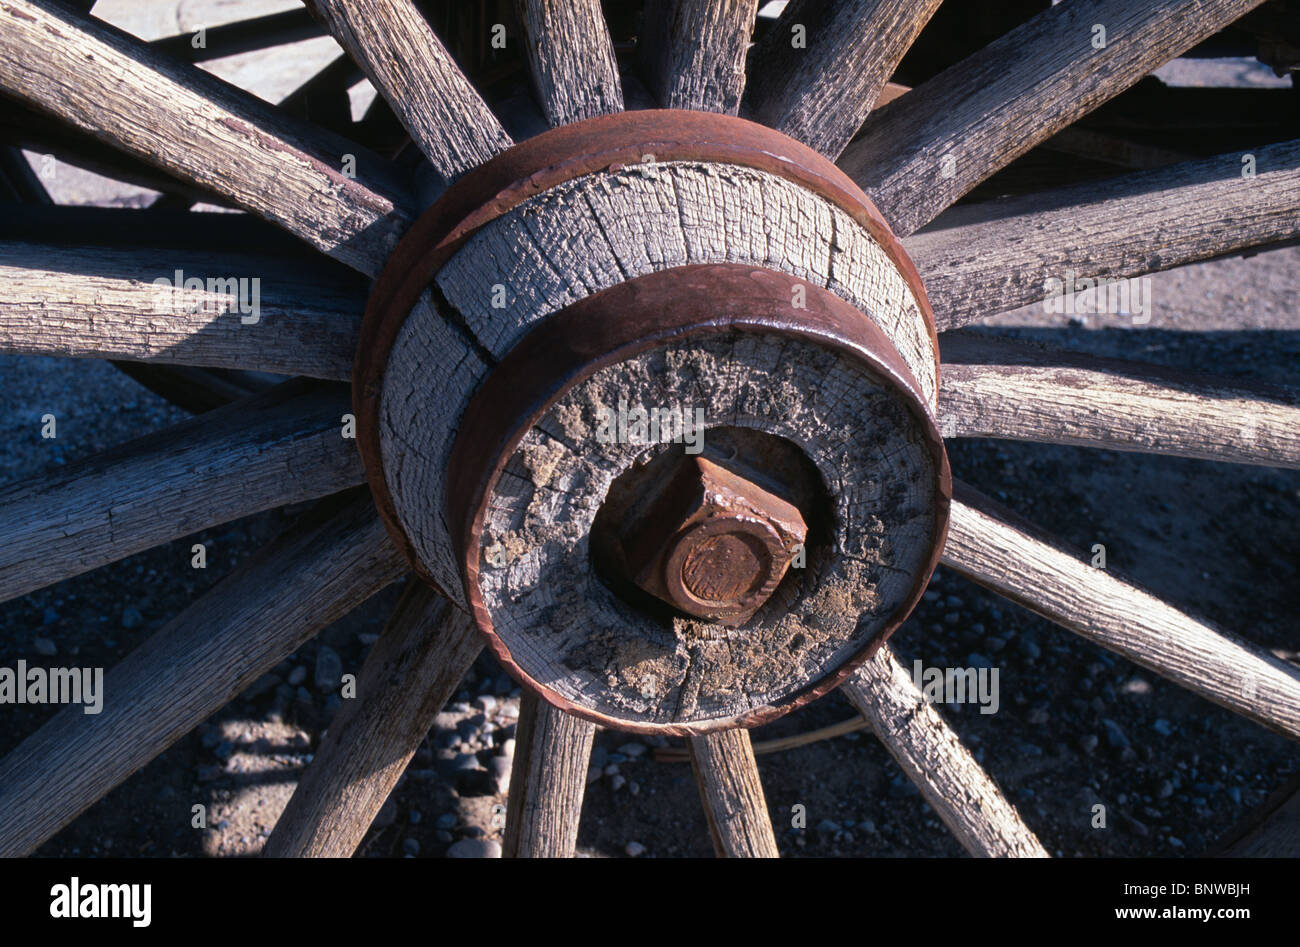 Wooden Axle Hub : Wooden hub and spokes of antique stage coach wagon wheel